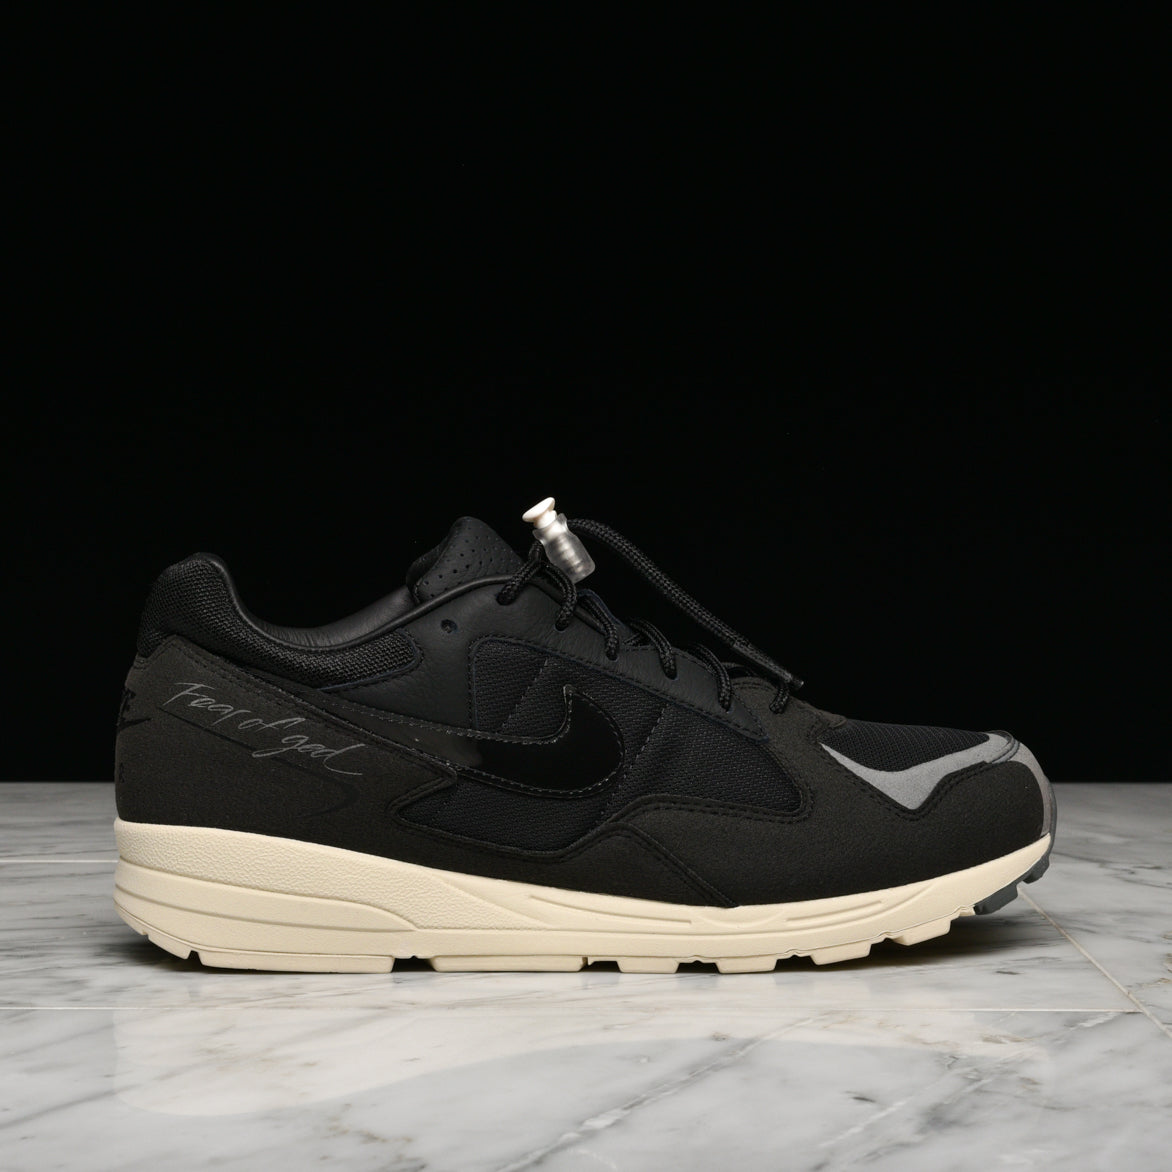 reputable site 1ac73 2085c FEAR OF GOD X NIKE AIR SKYLON II - BLACK   lapstoneandhammer.com